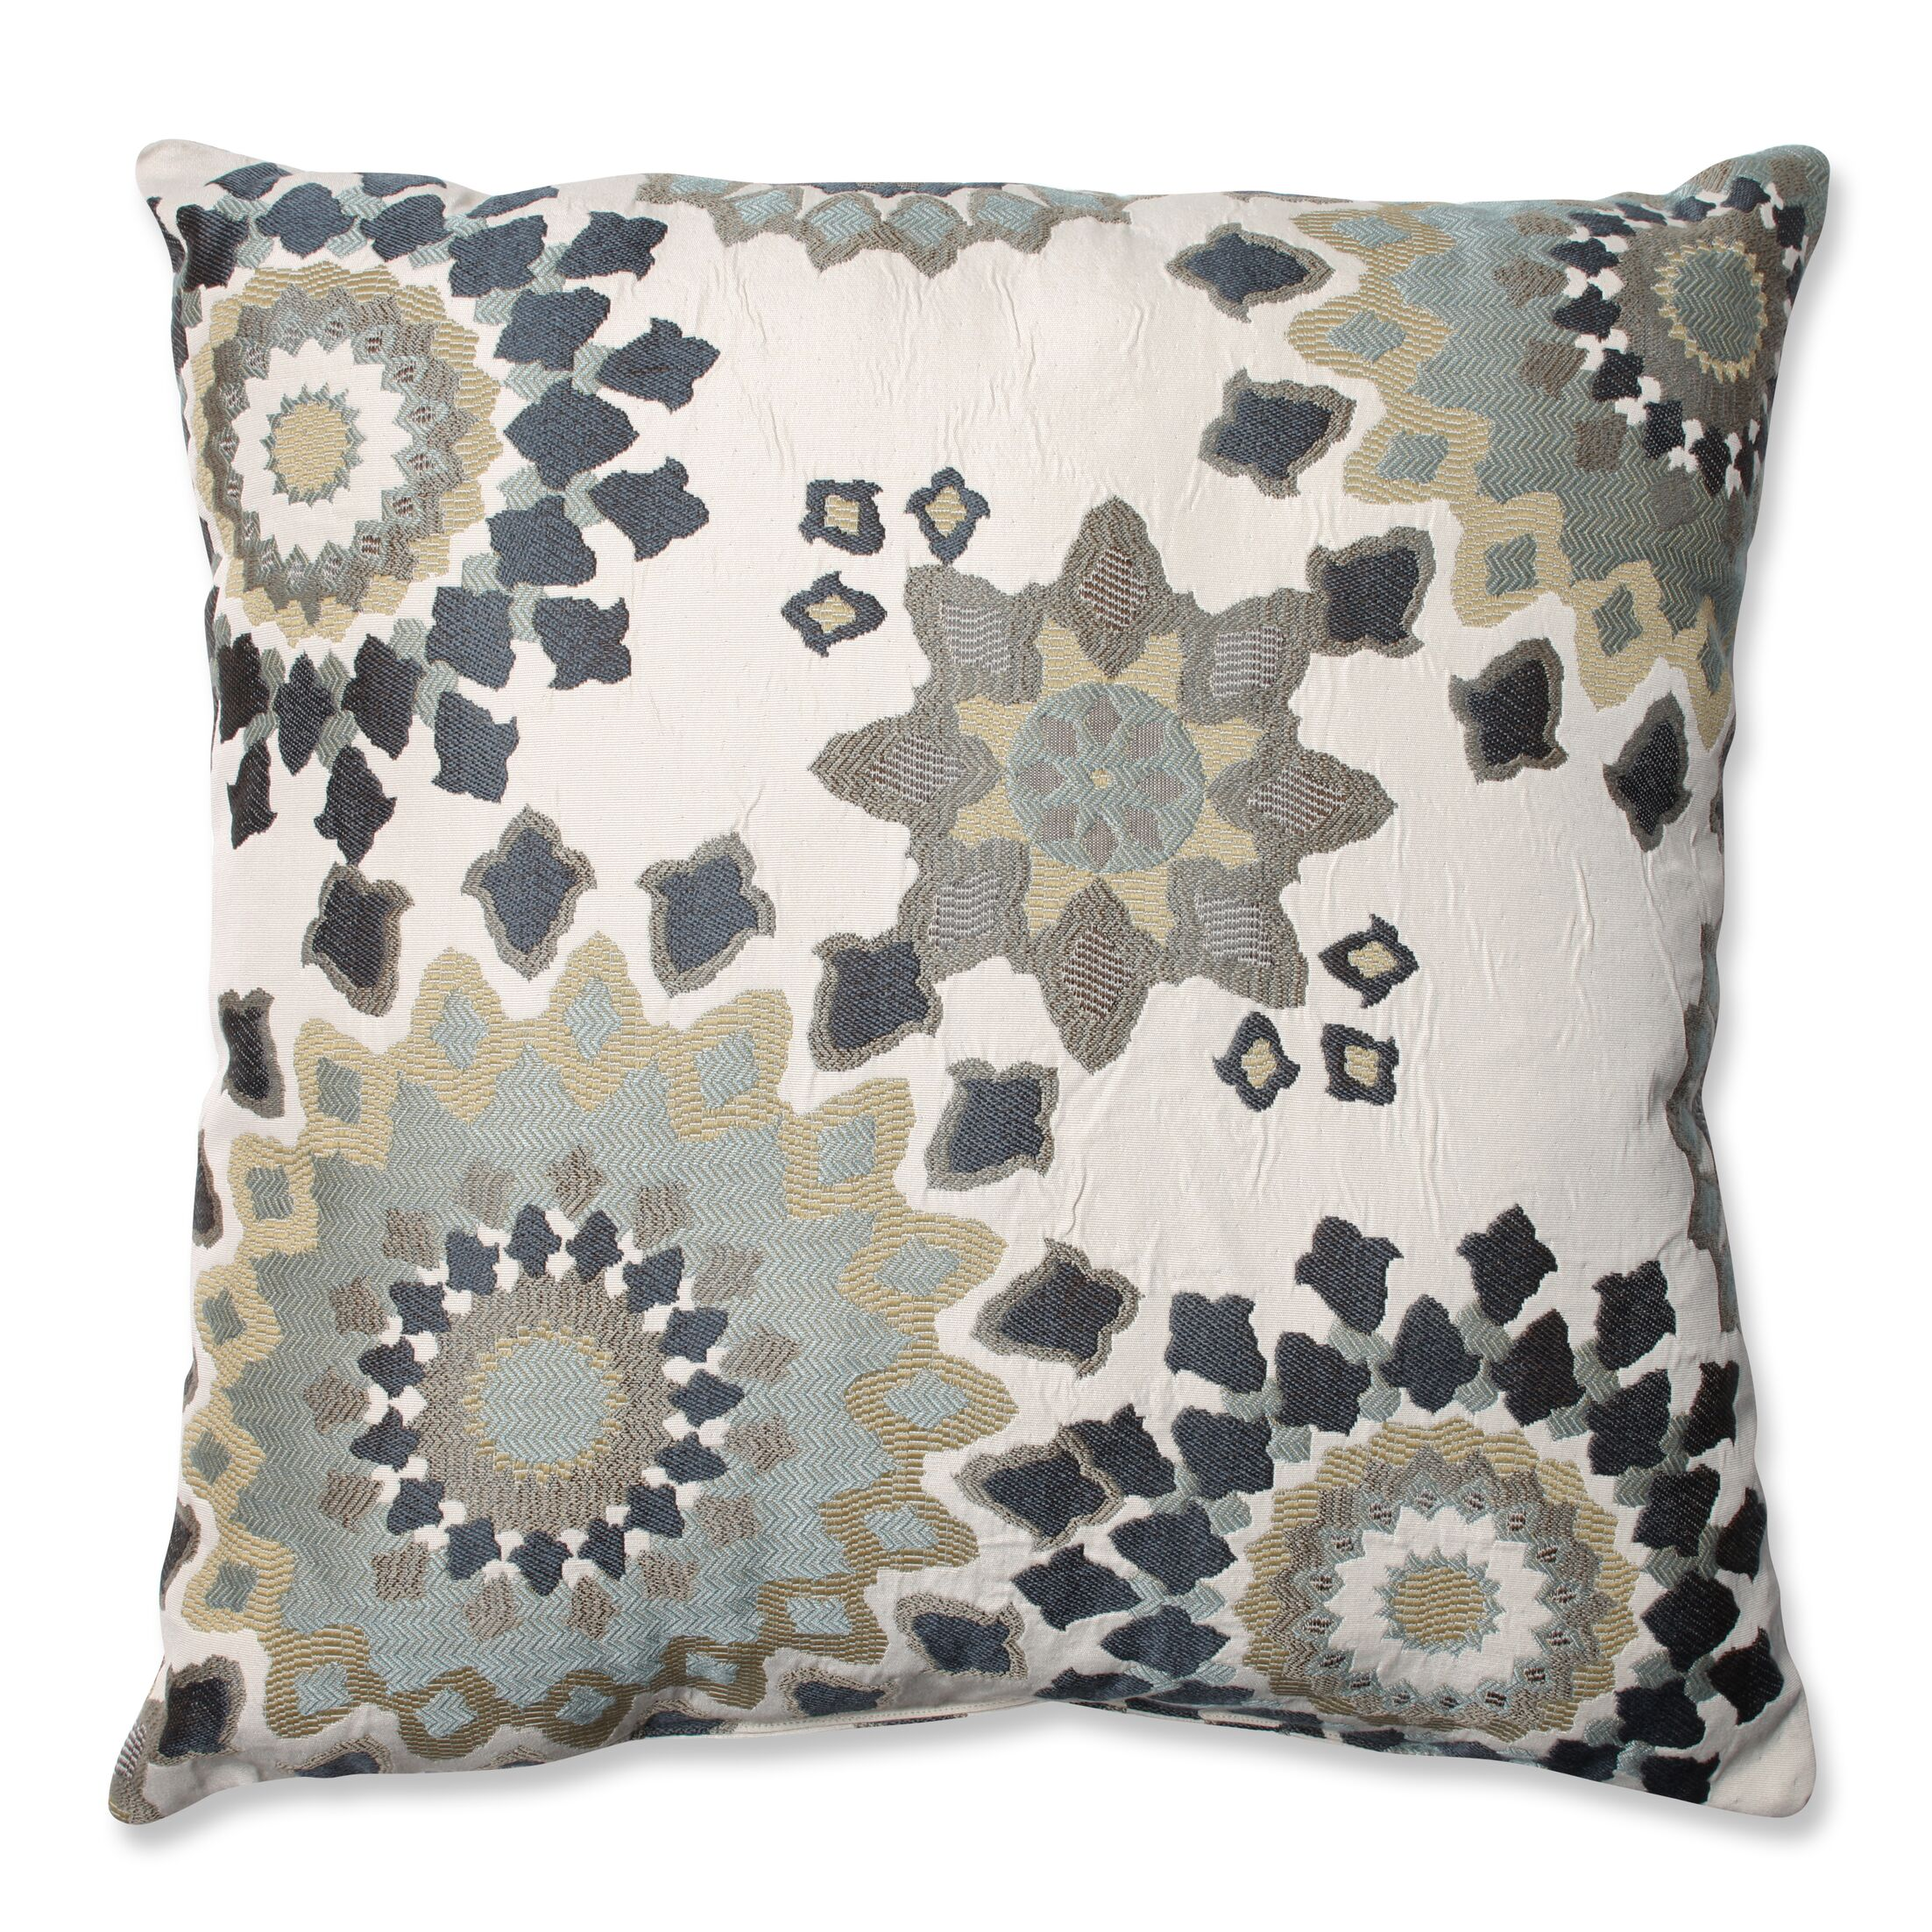 Sherwin Throw Pillow (Set of 2) Size: 24.5